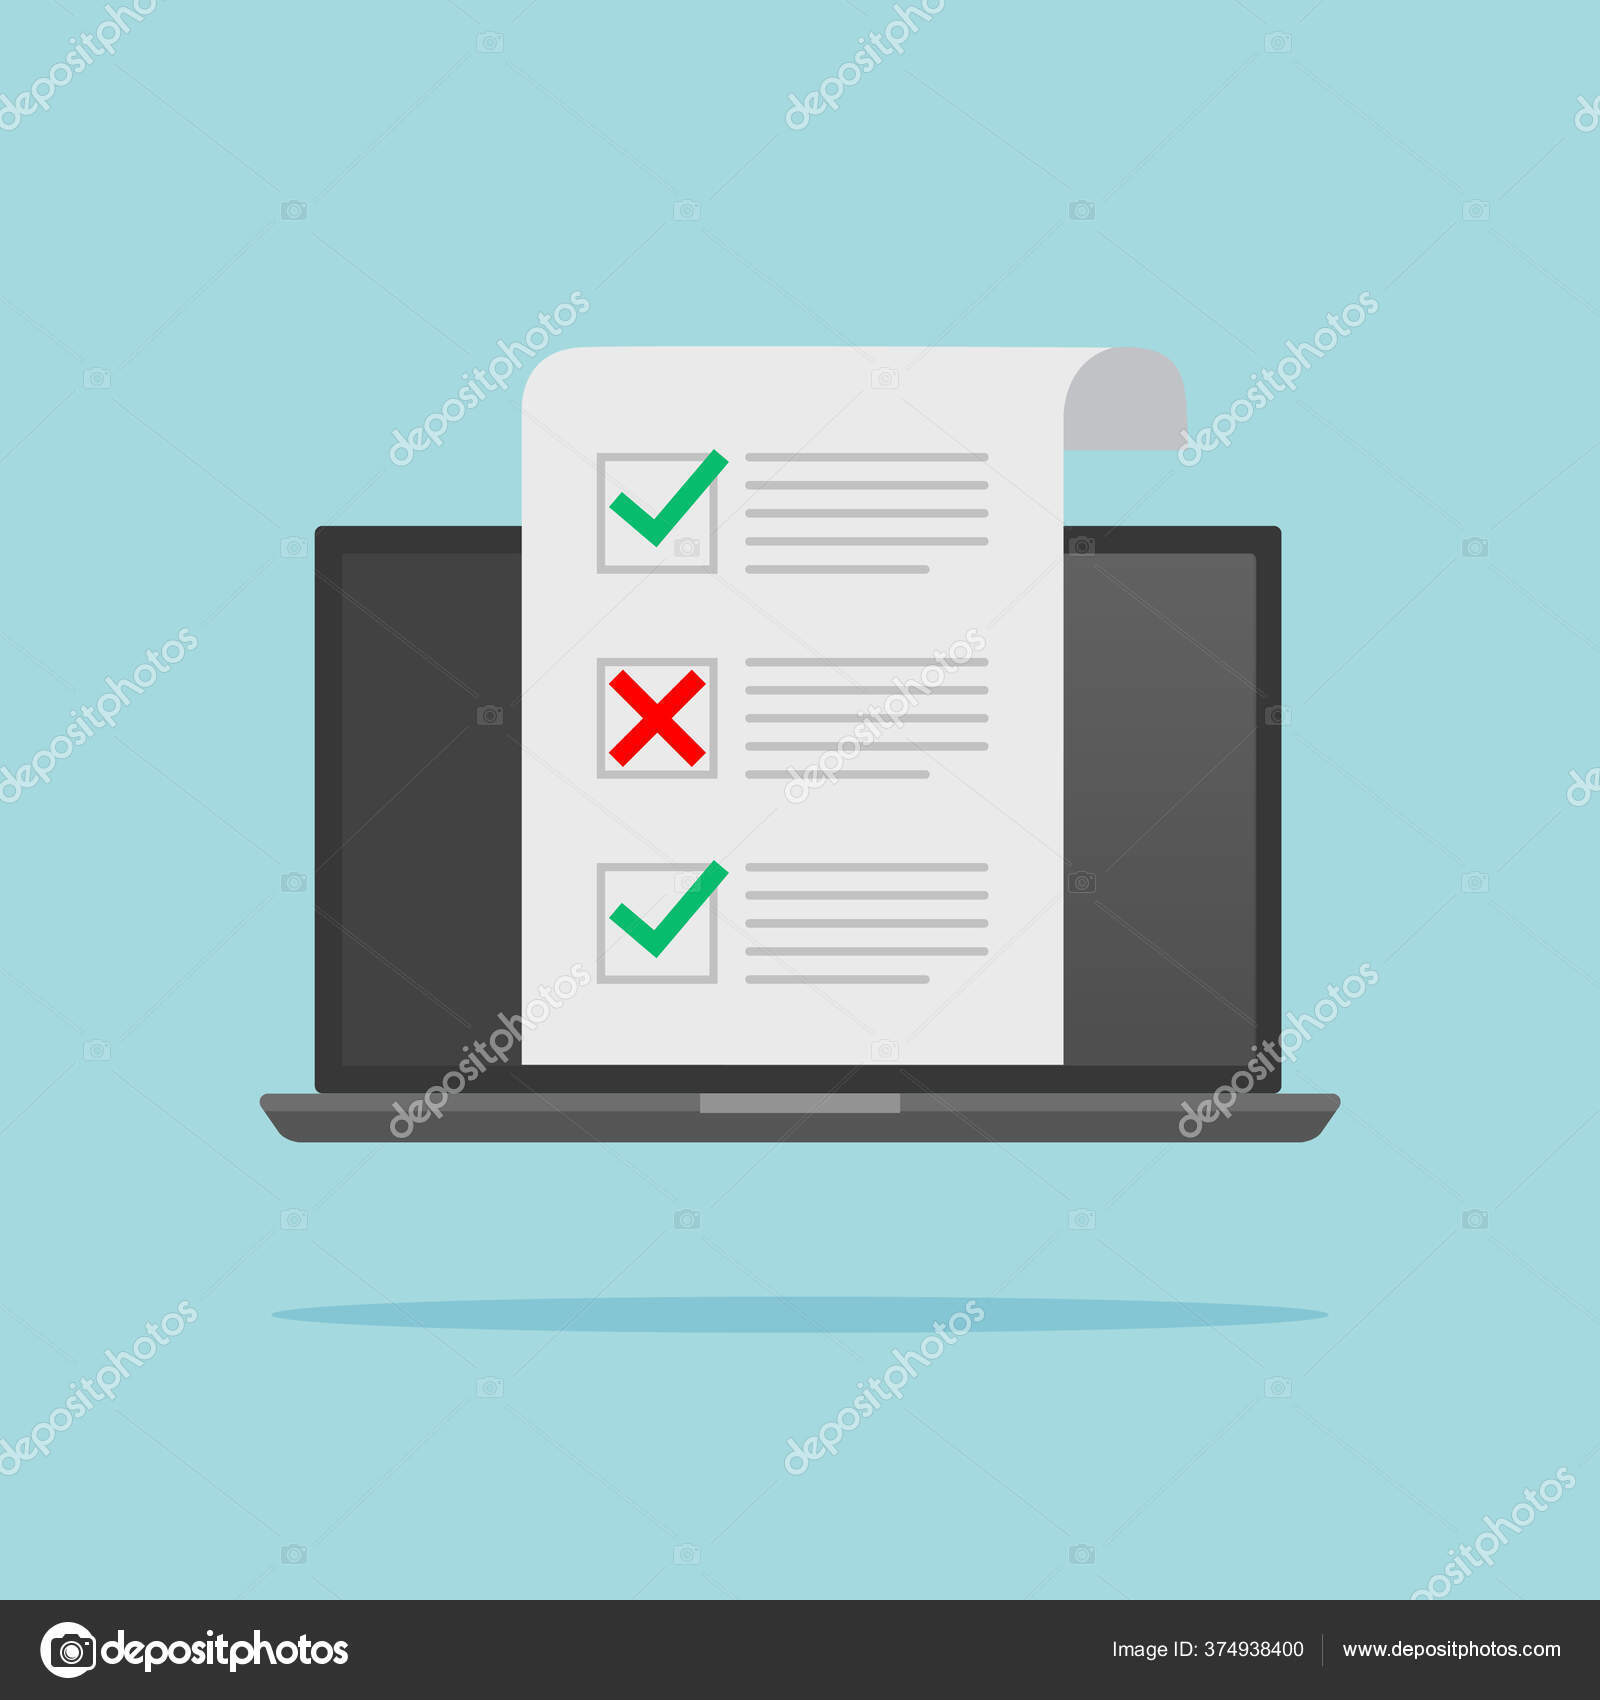 Computer Laptop Online Quiz Form Checklist Screen Choice Survey Concepts Stock Vector C Fayethequeen93 374938400